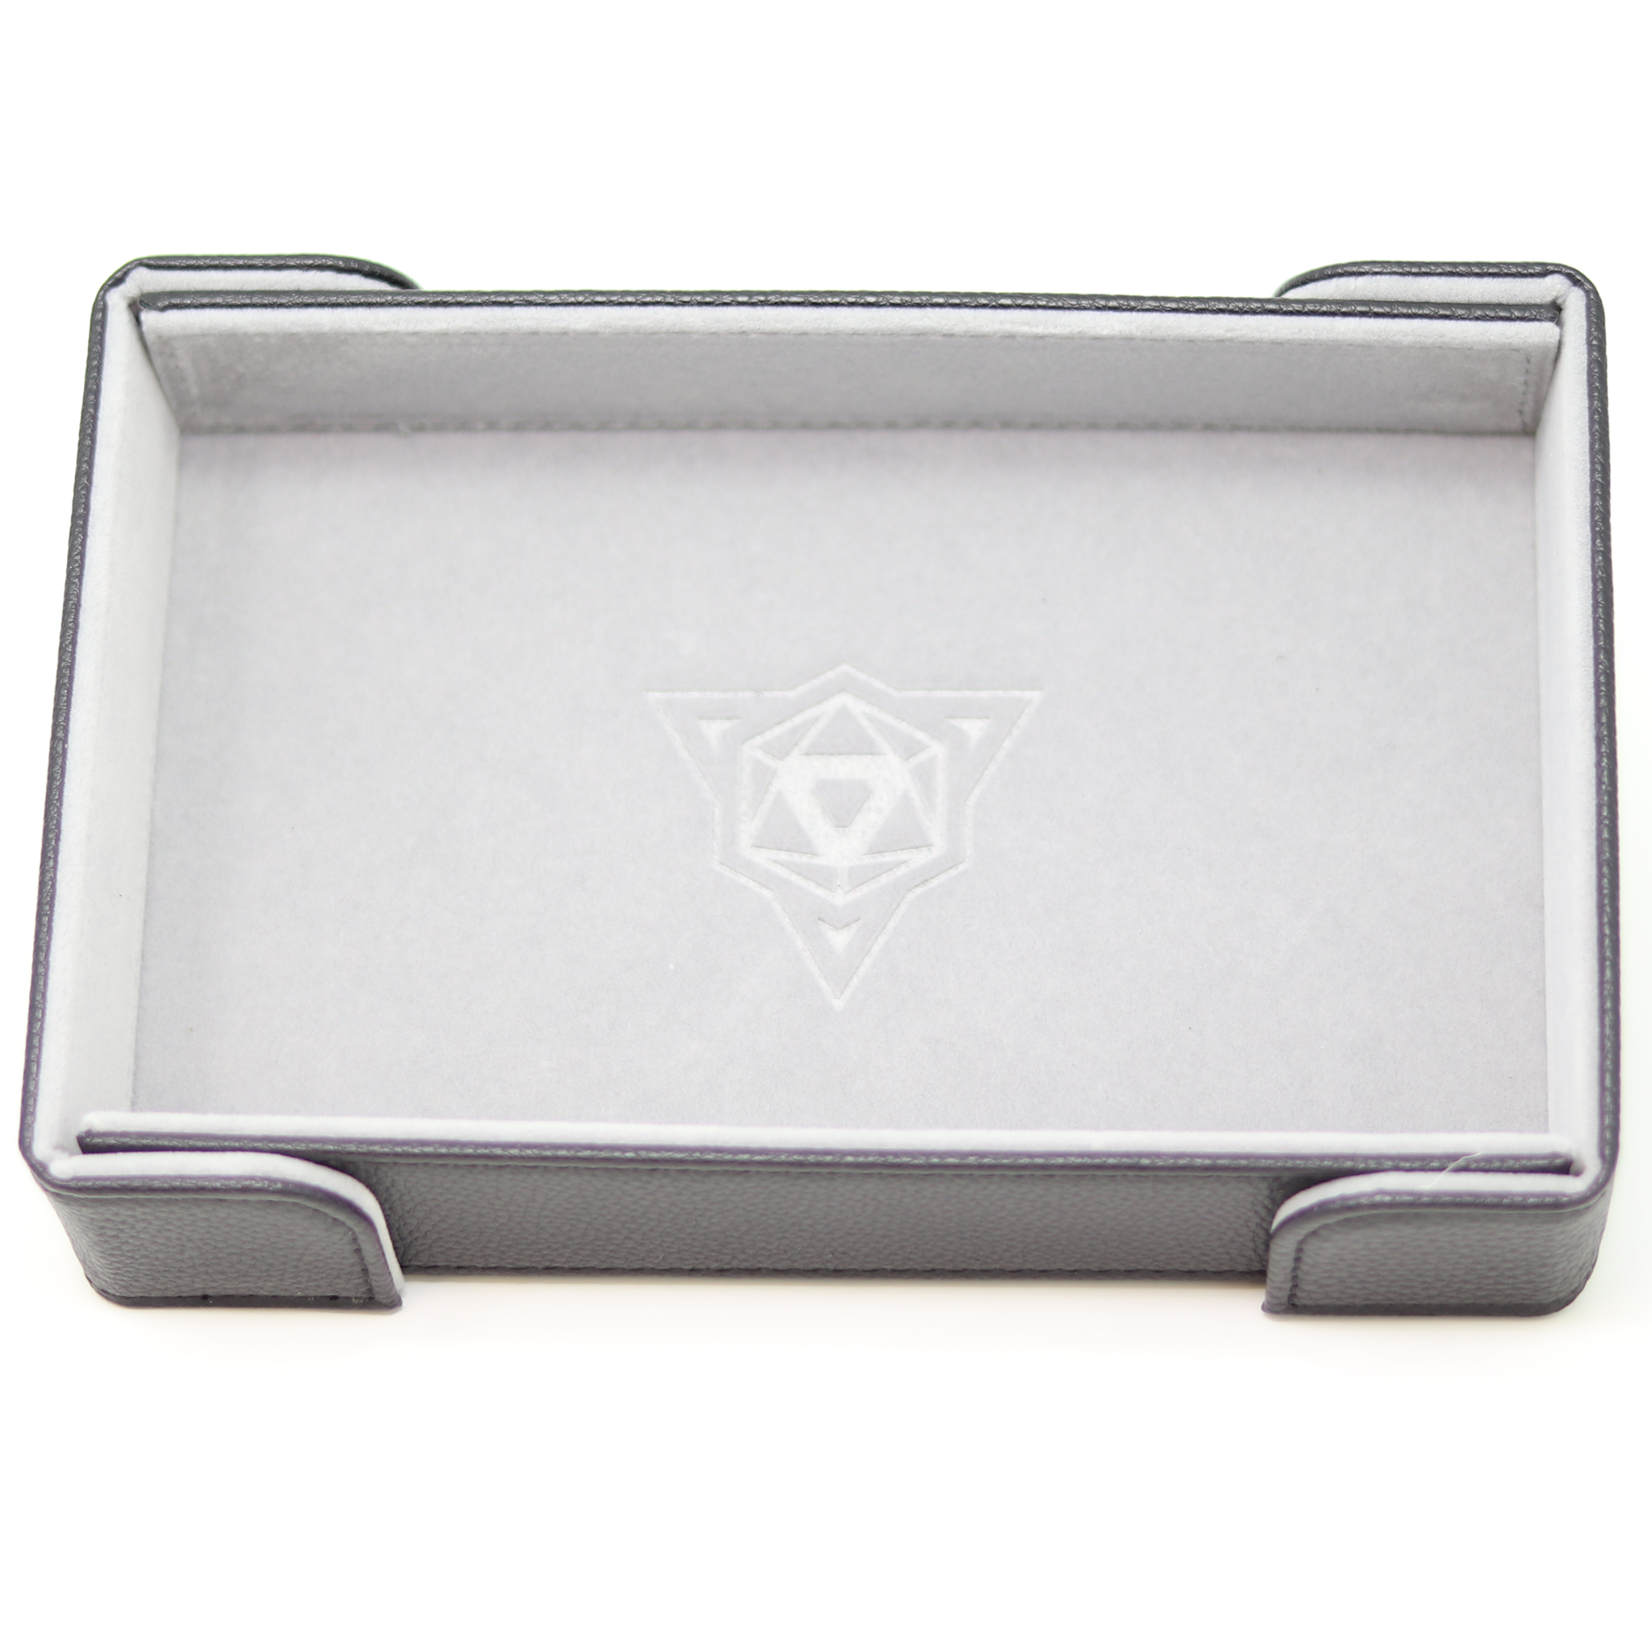 Die Hard Dice Dice Tray Magnetic Rectangle Gray